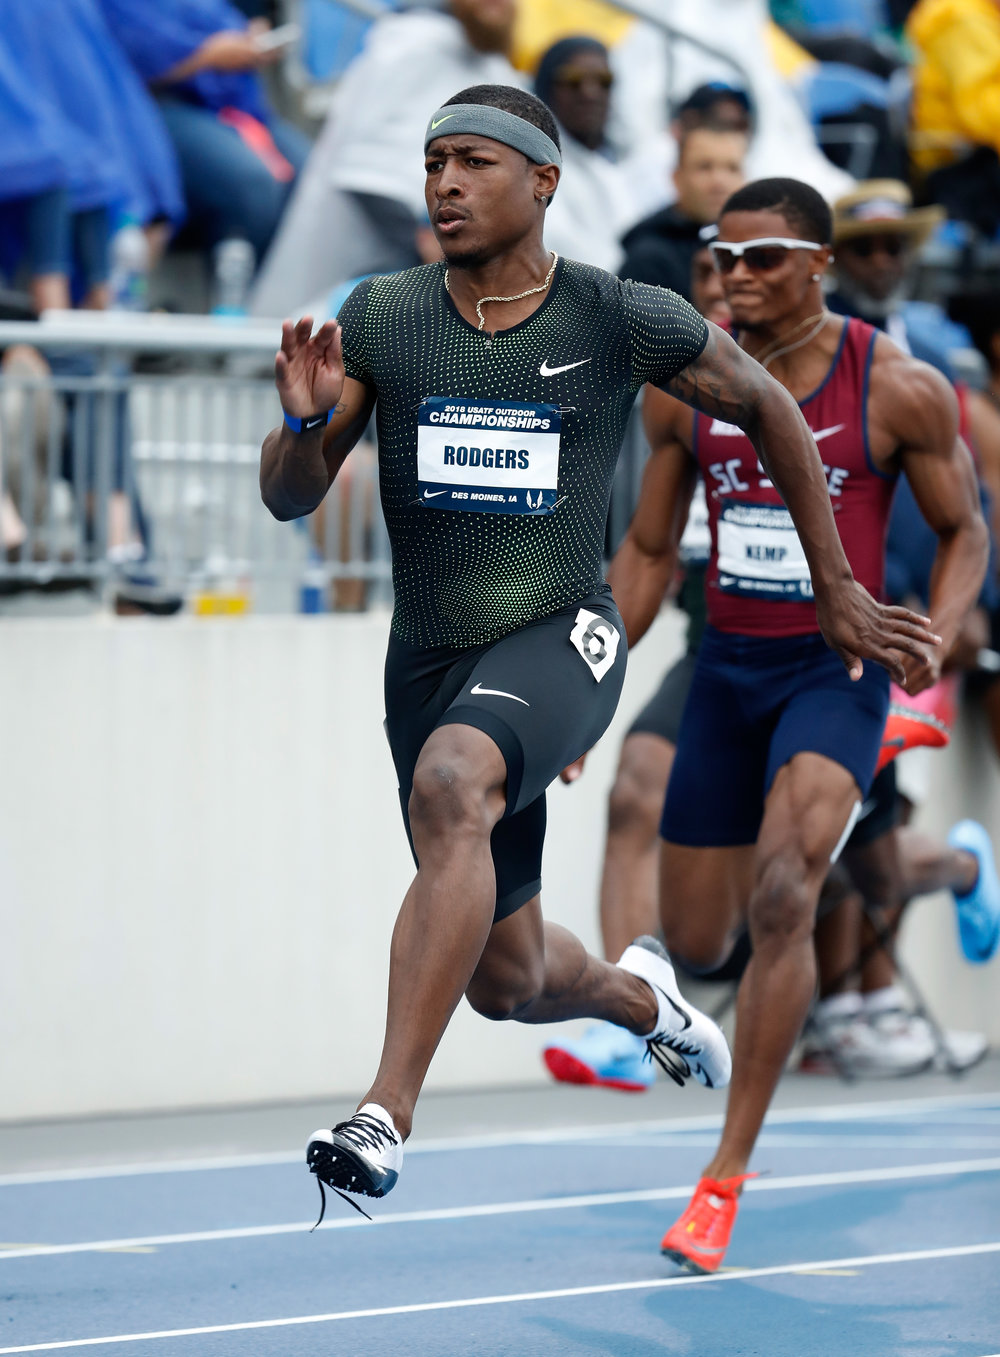 Mike Rodgers running Thursday in Des Moines at the US championships // Getty Images